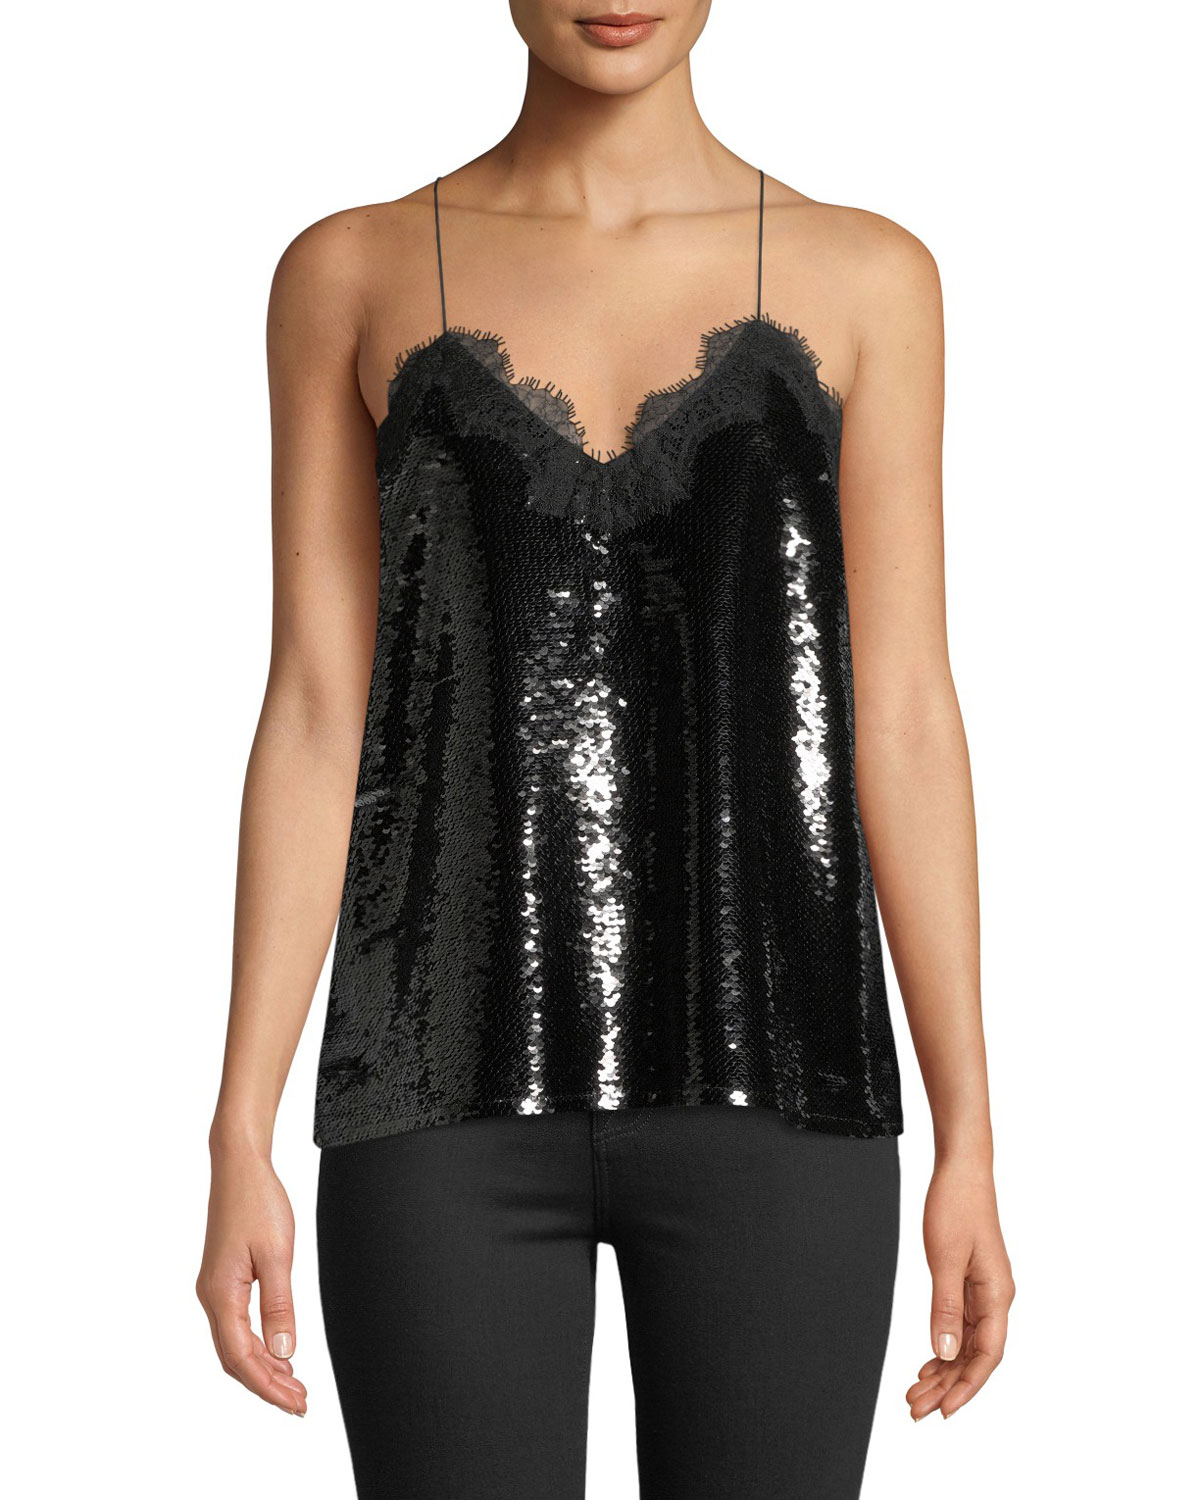 Cami NYC The Racer Sequin Camisole with Lace Trim